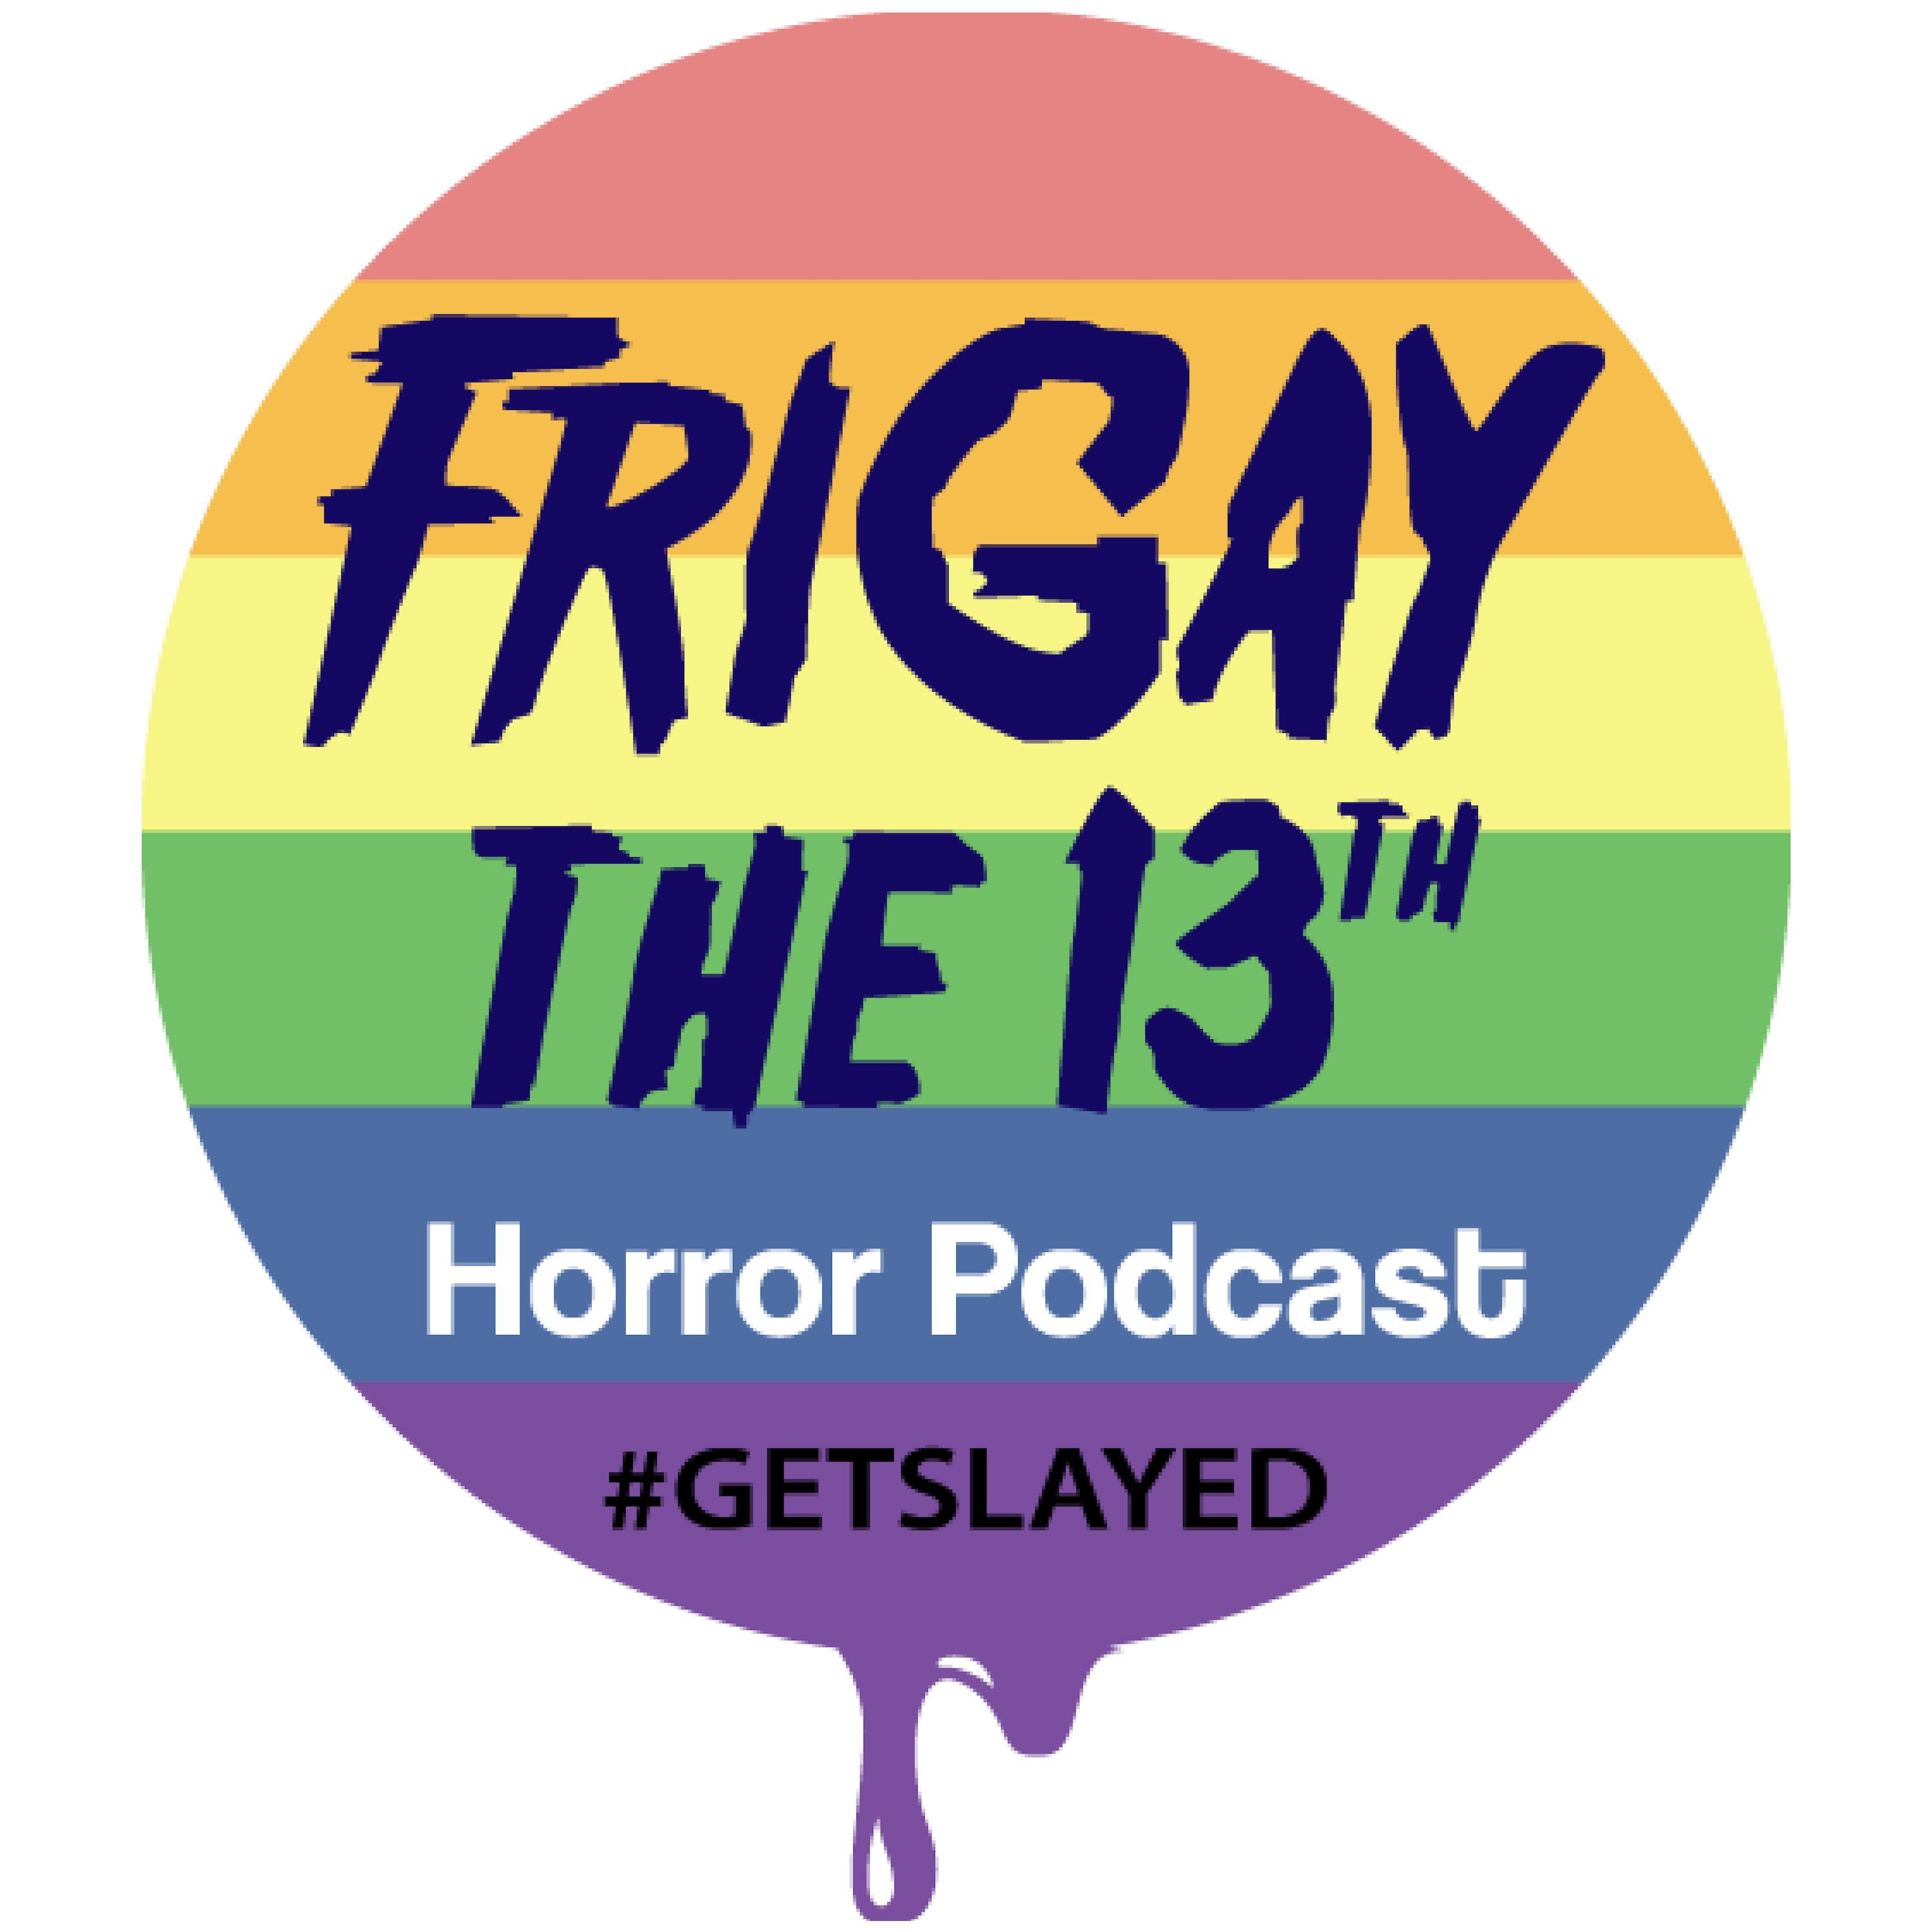 EPISODE 17: THE KIDS ARE NOT ALRIGHT! - FriGay the 13th